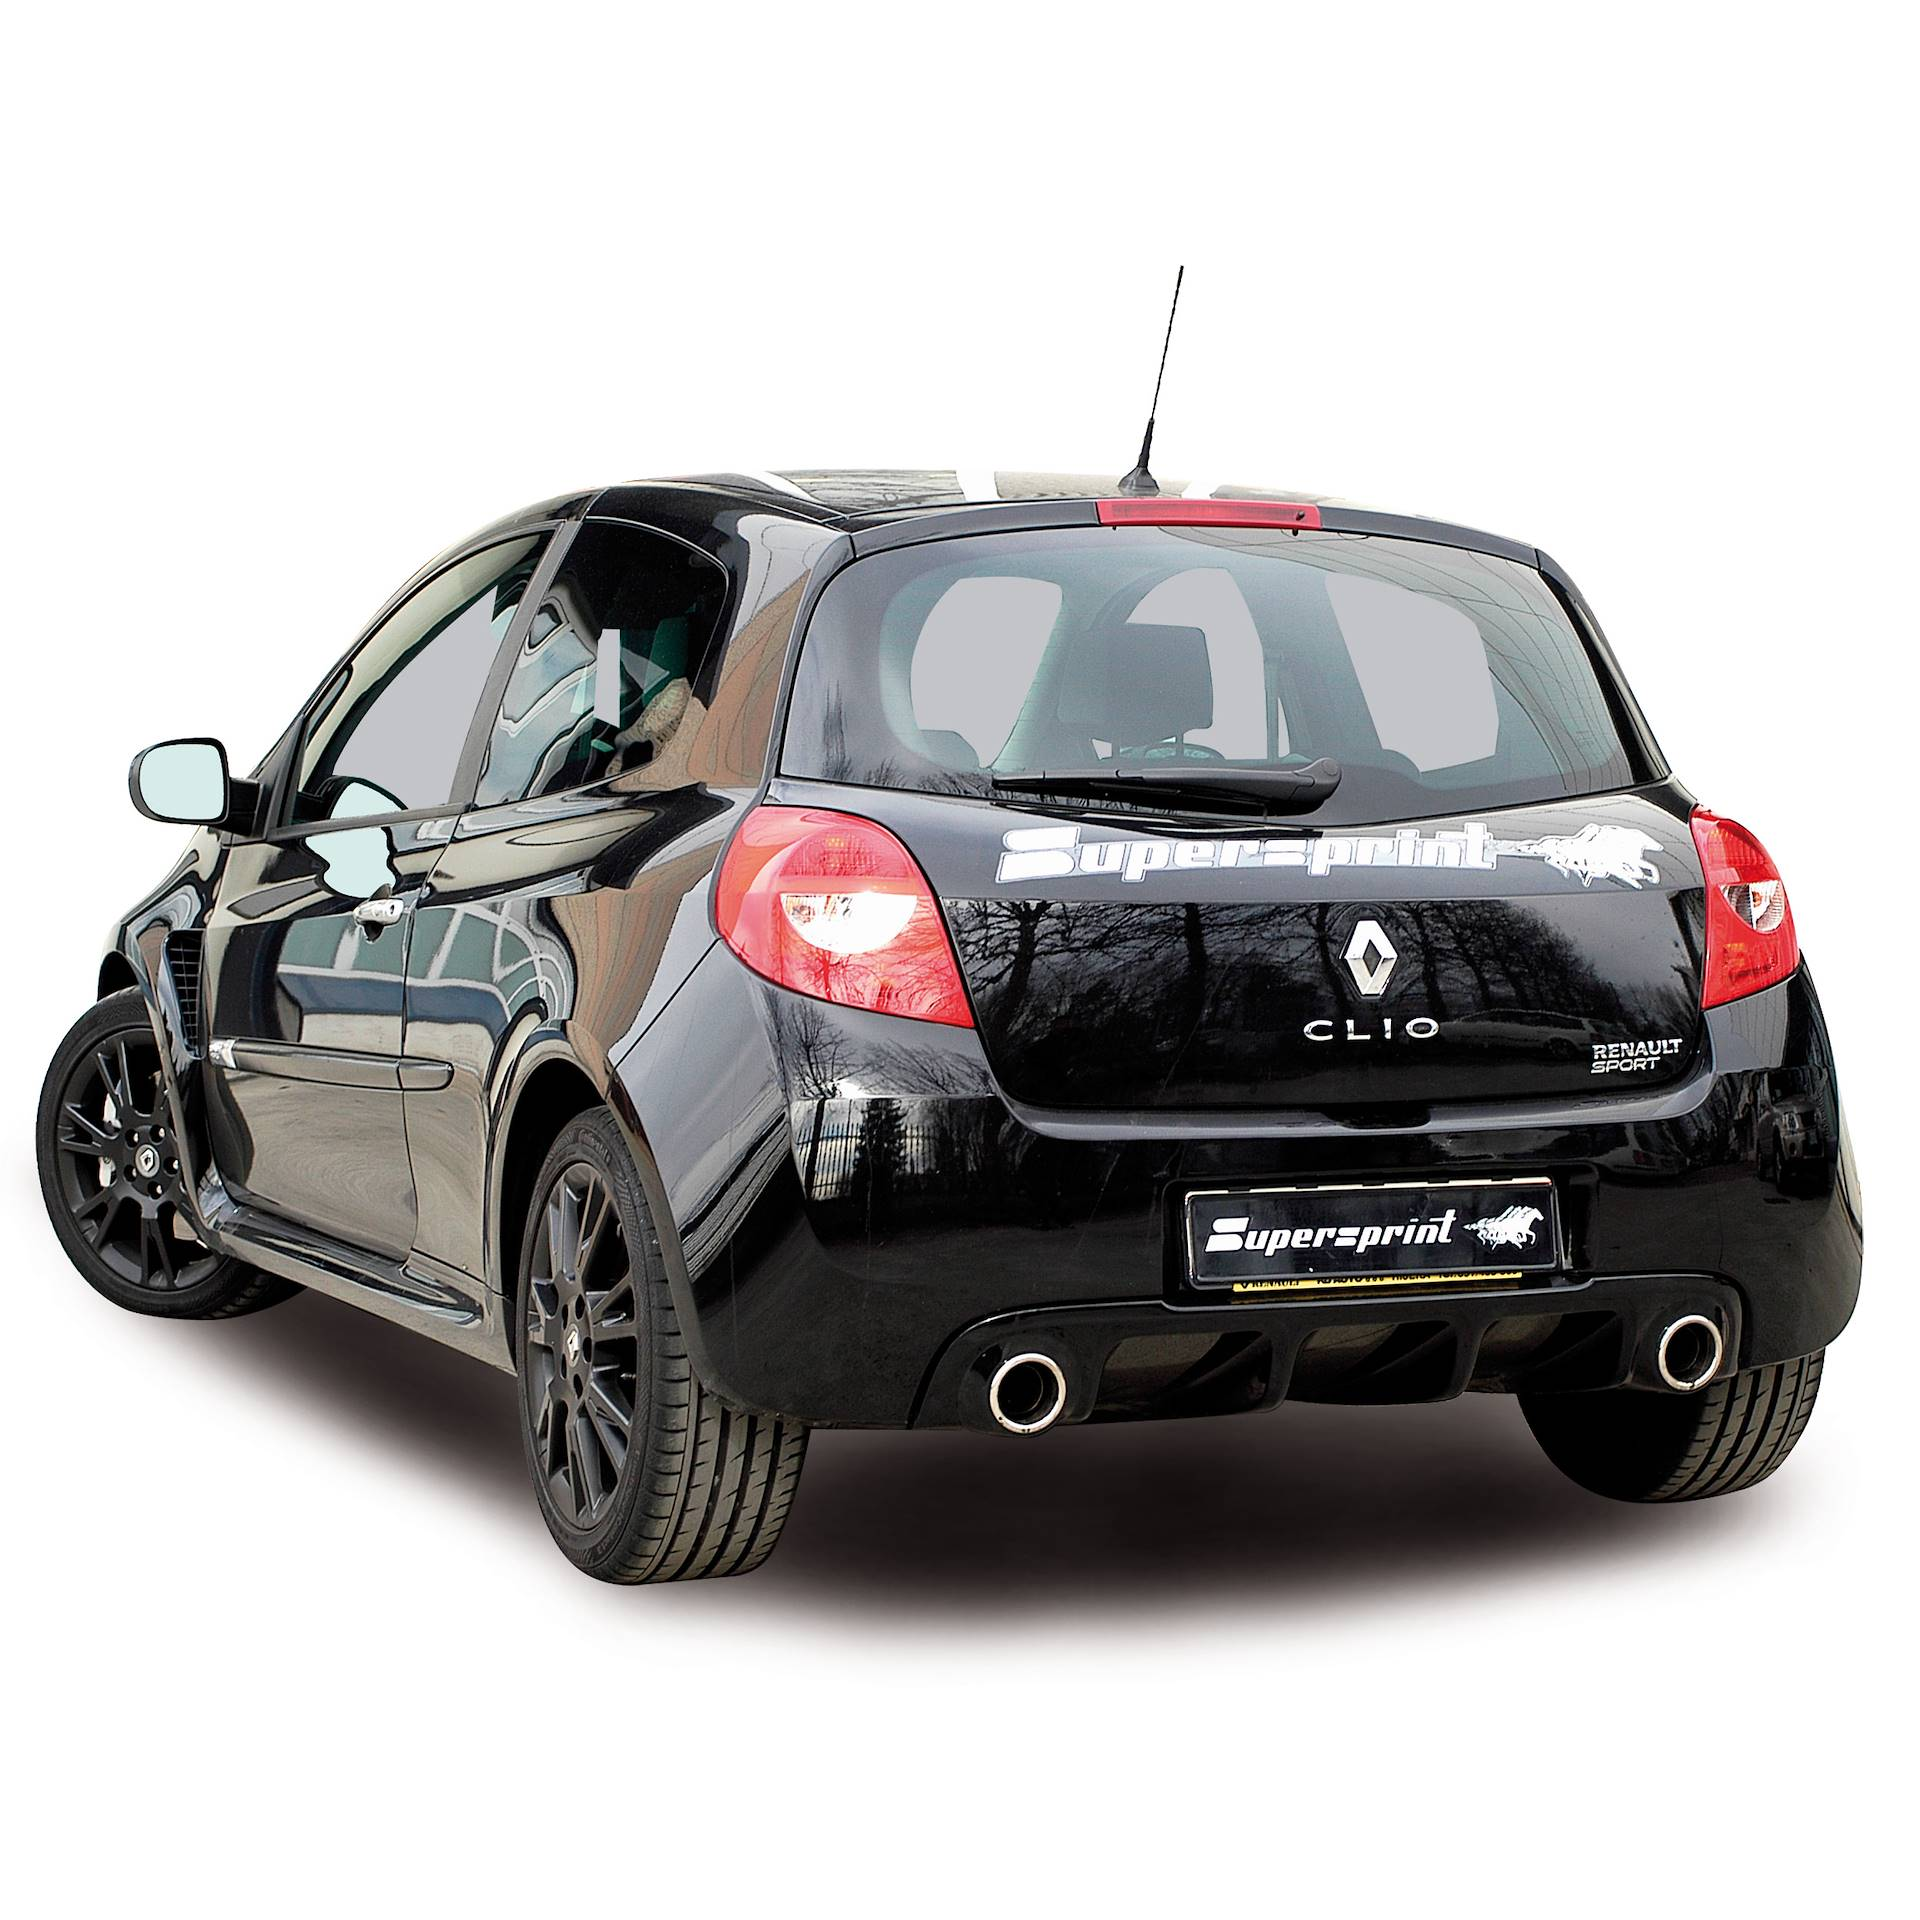 renault clio iii rs 200 hp 2010 renault exhaust systems. Black Bedroom Furniture Sets. Home Design Ideas